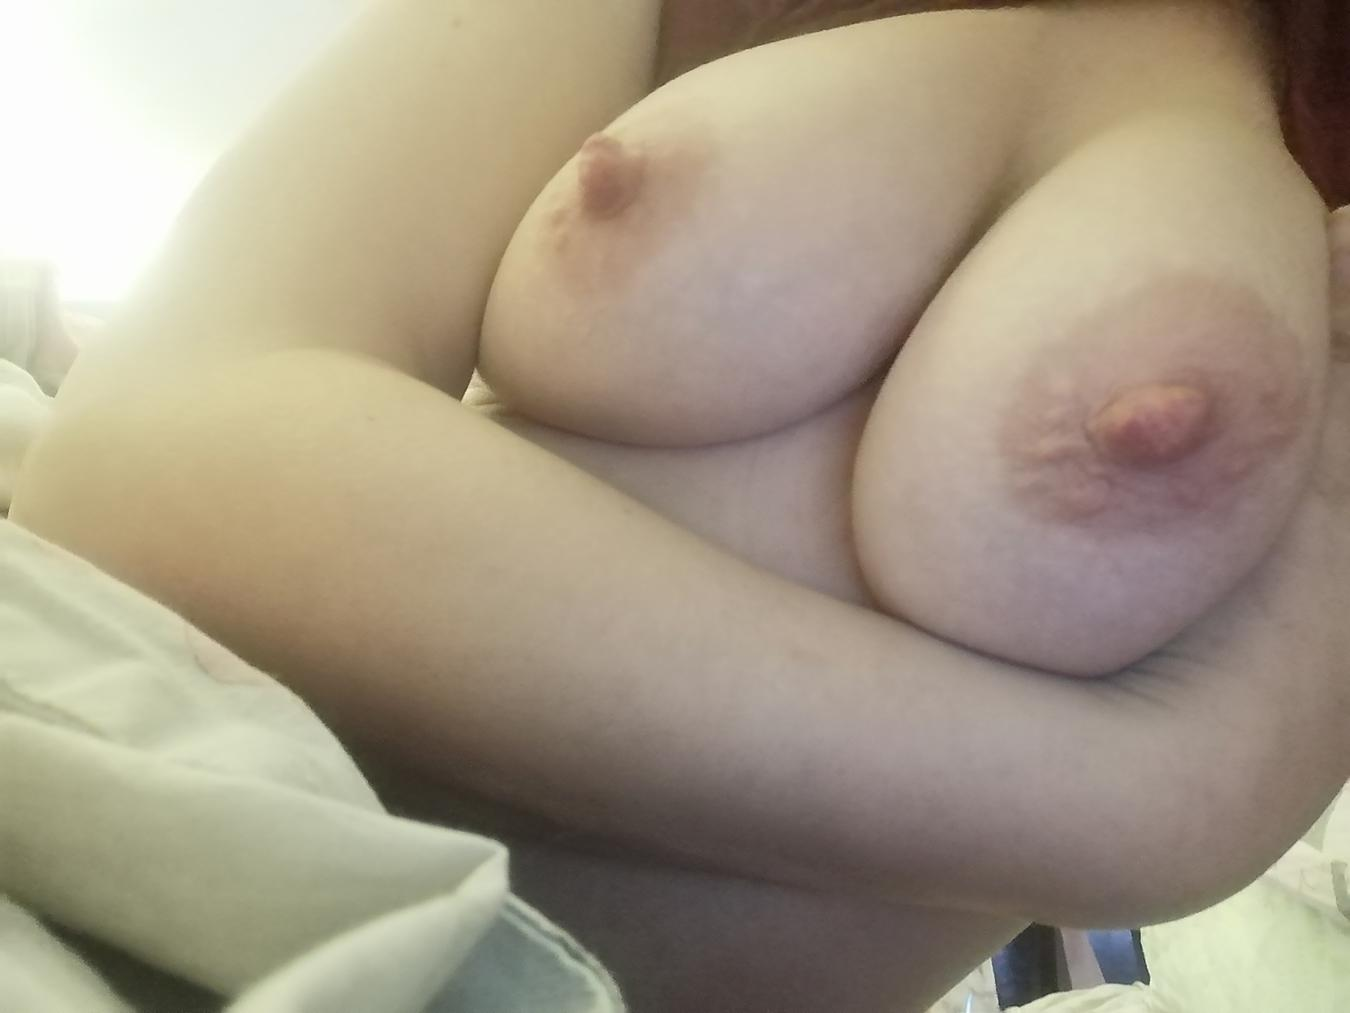 Picture with tags: Topless, Interesting